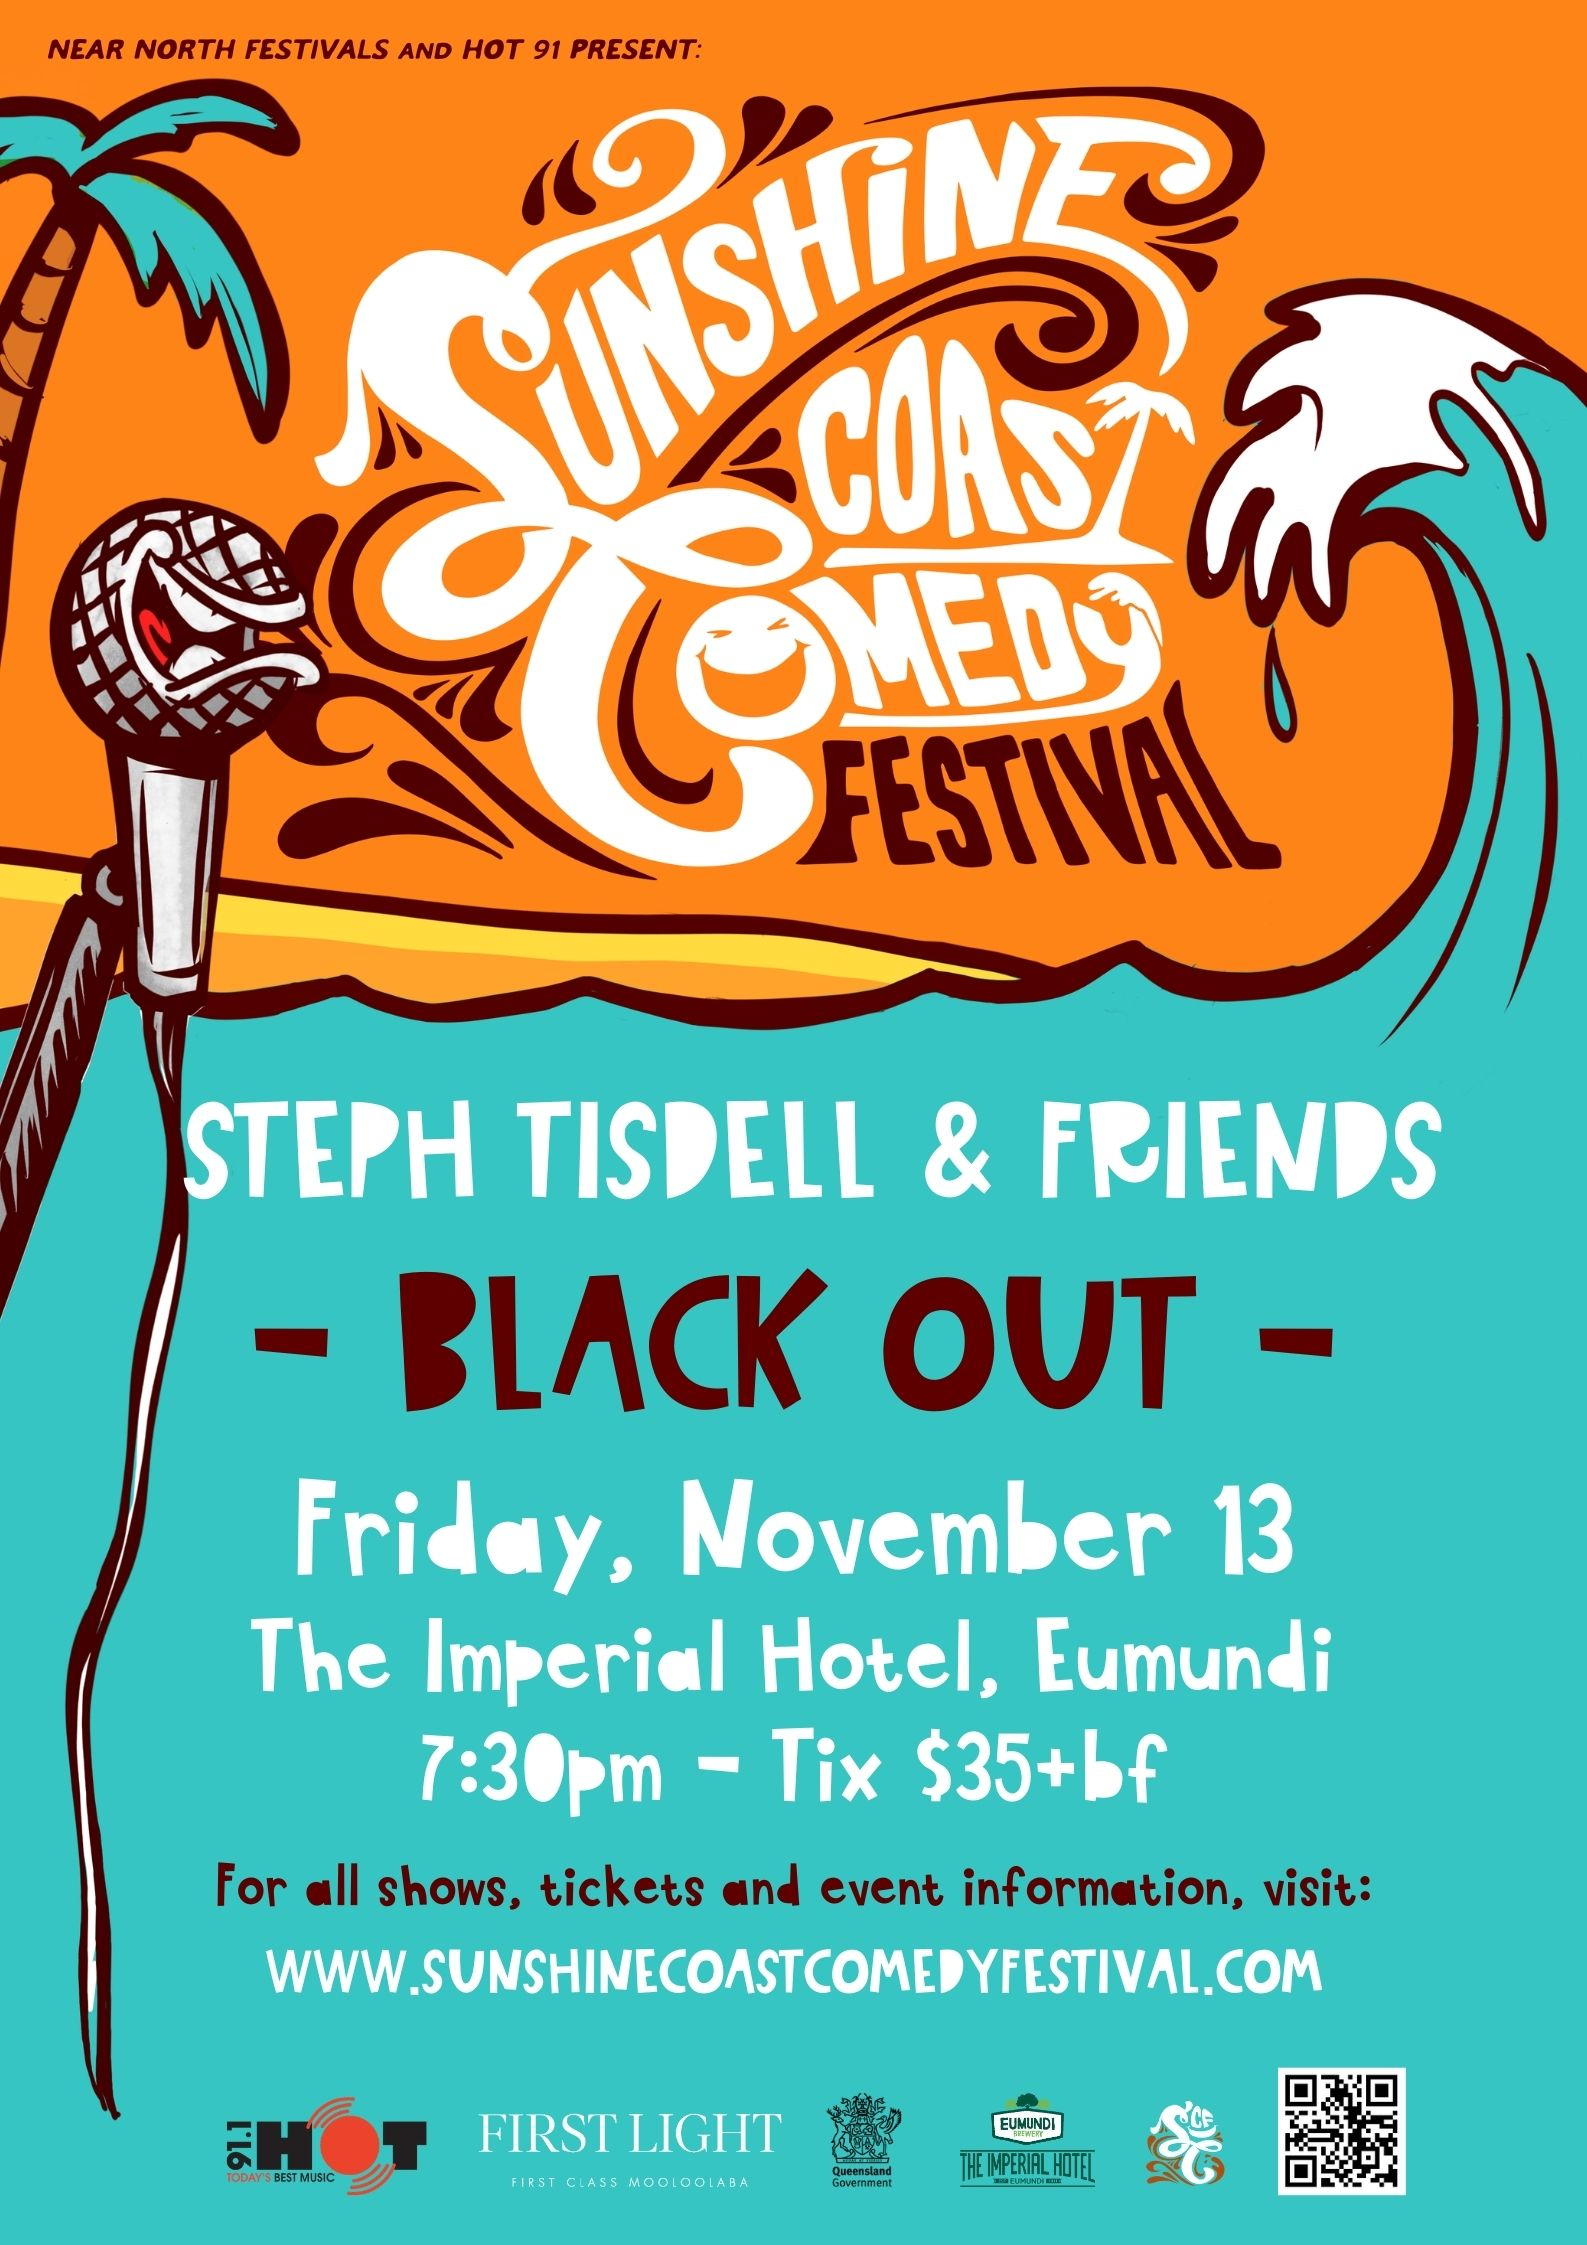 STEPH TISDELL & FRIENDS, 'Black Out'